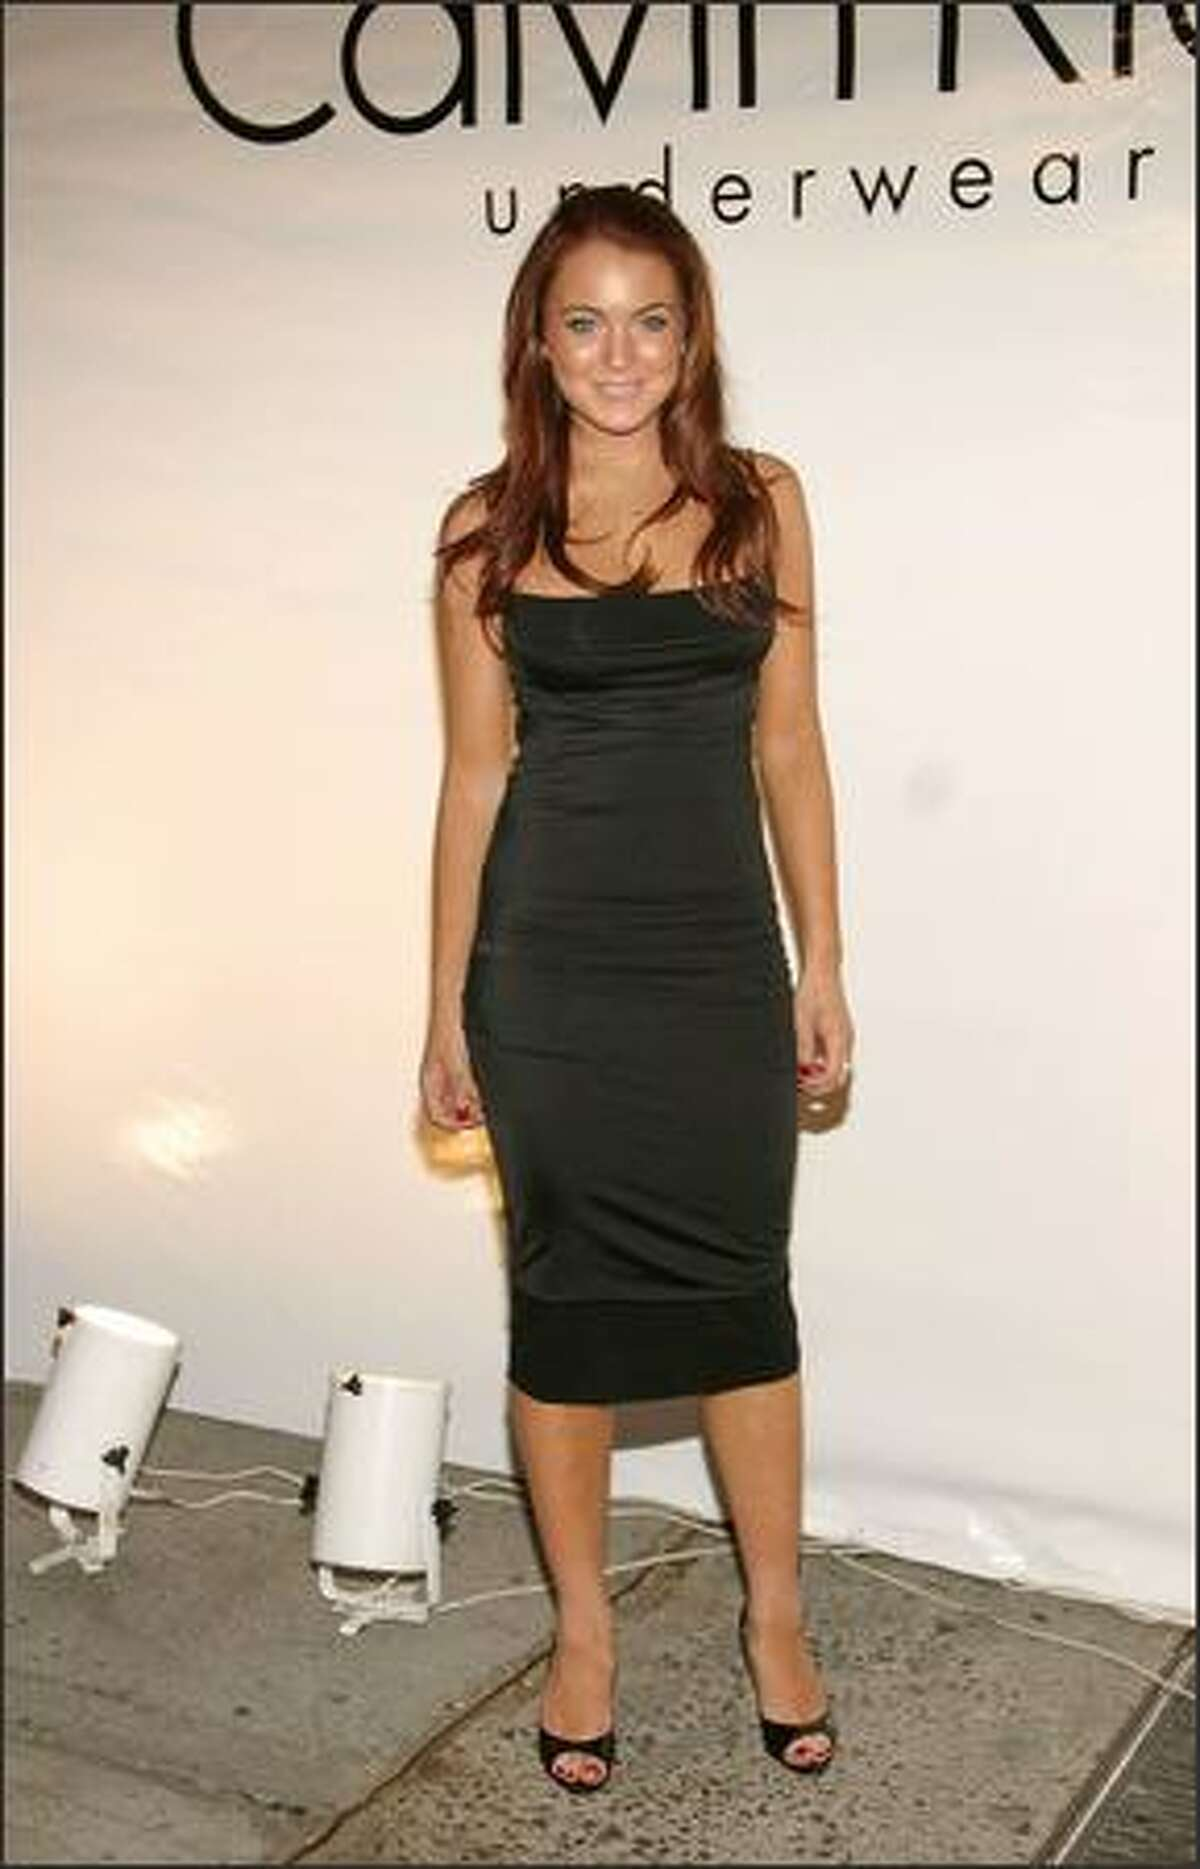 May 2004: At a Calvin Klein underwear party in New York.